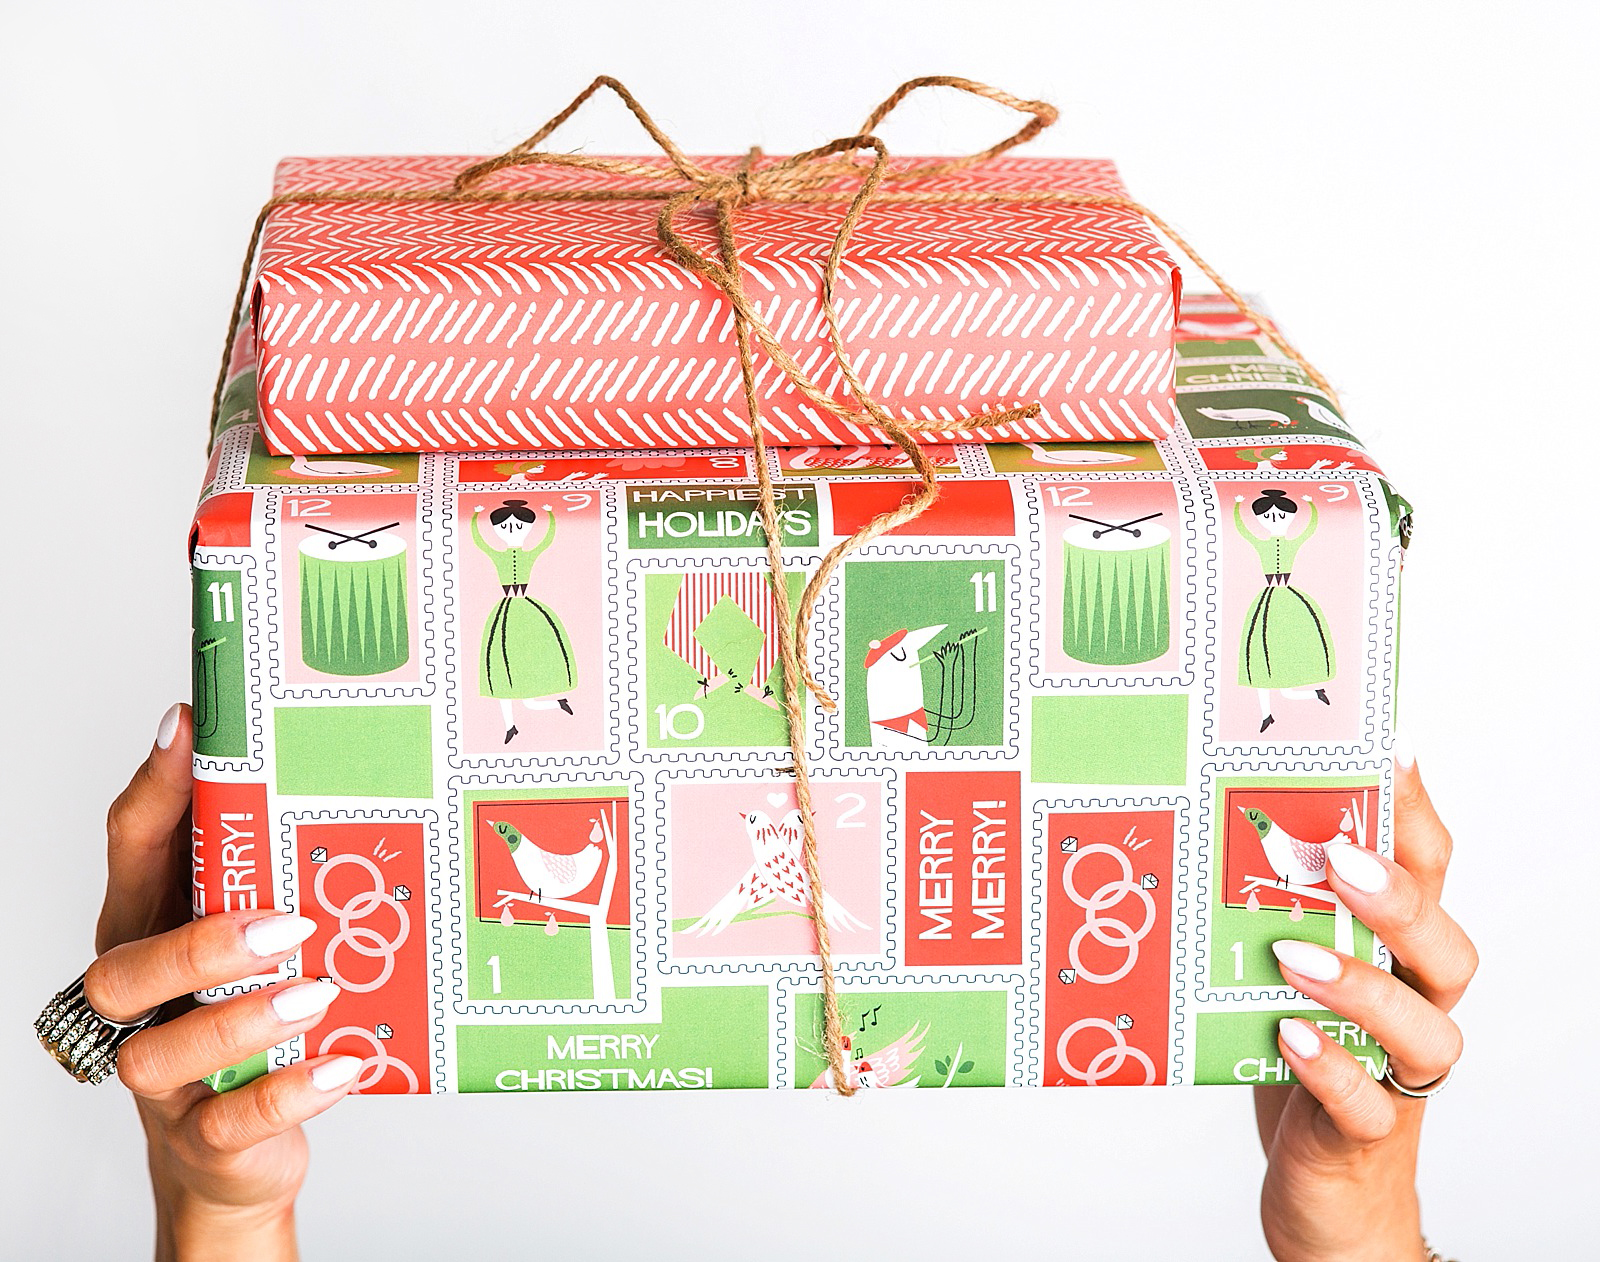 diana-elizabeth-blog-minted-custom-christmas-holiday-wrapping-paper-wurth-organizing-early-christmas-holiday-shopping-tips-2-2